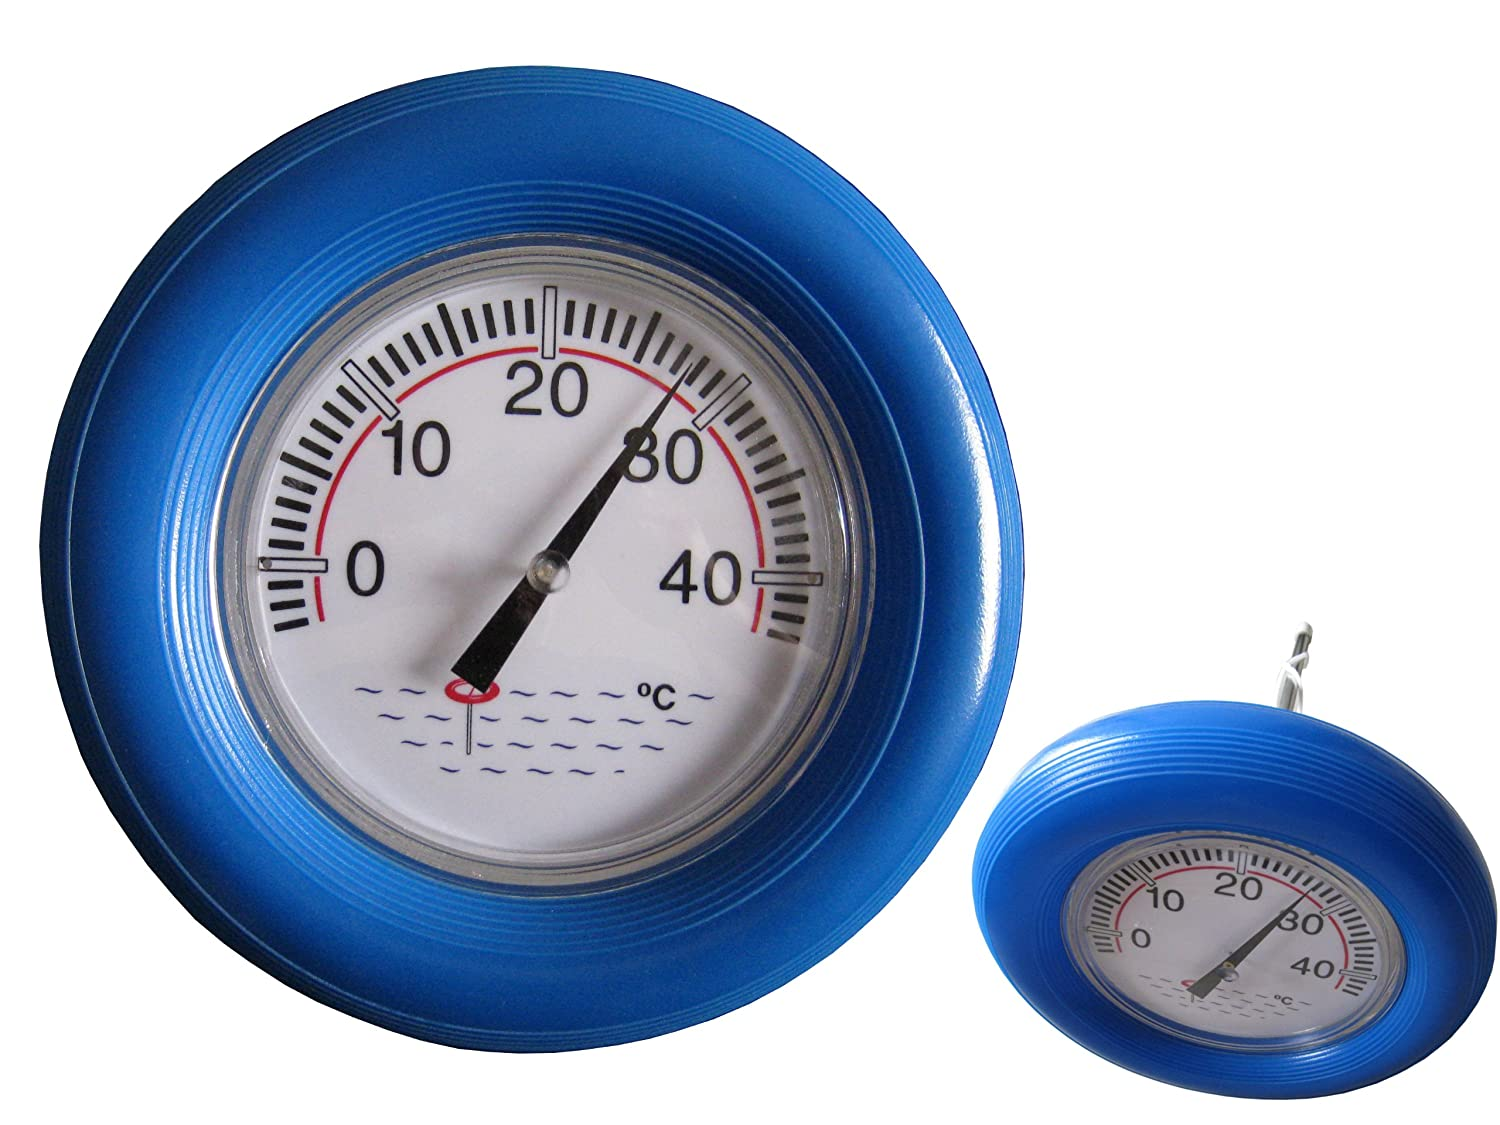 Dr. Richter Pool XXL – Pool Water Thermometer